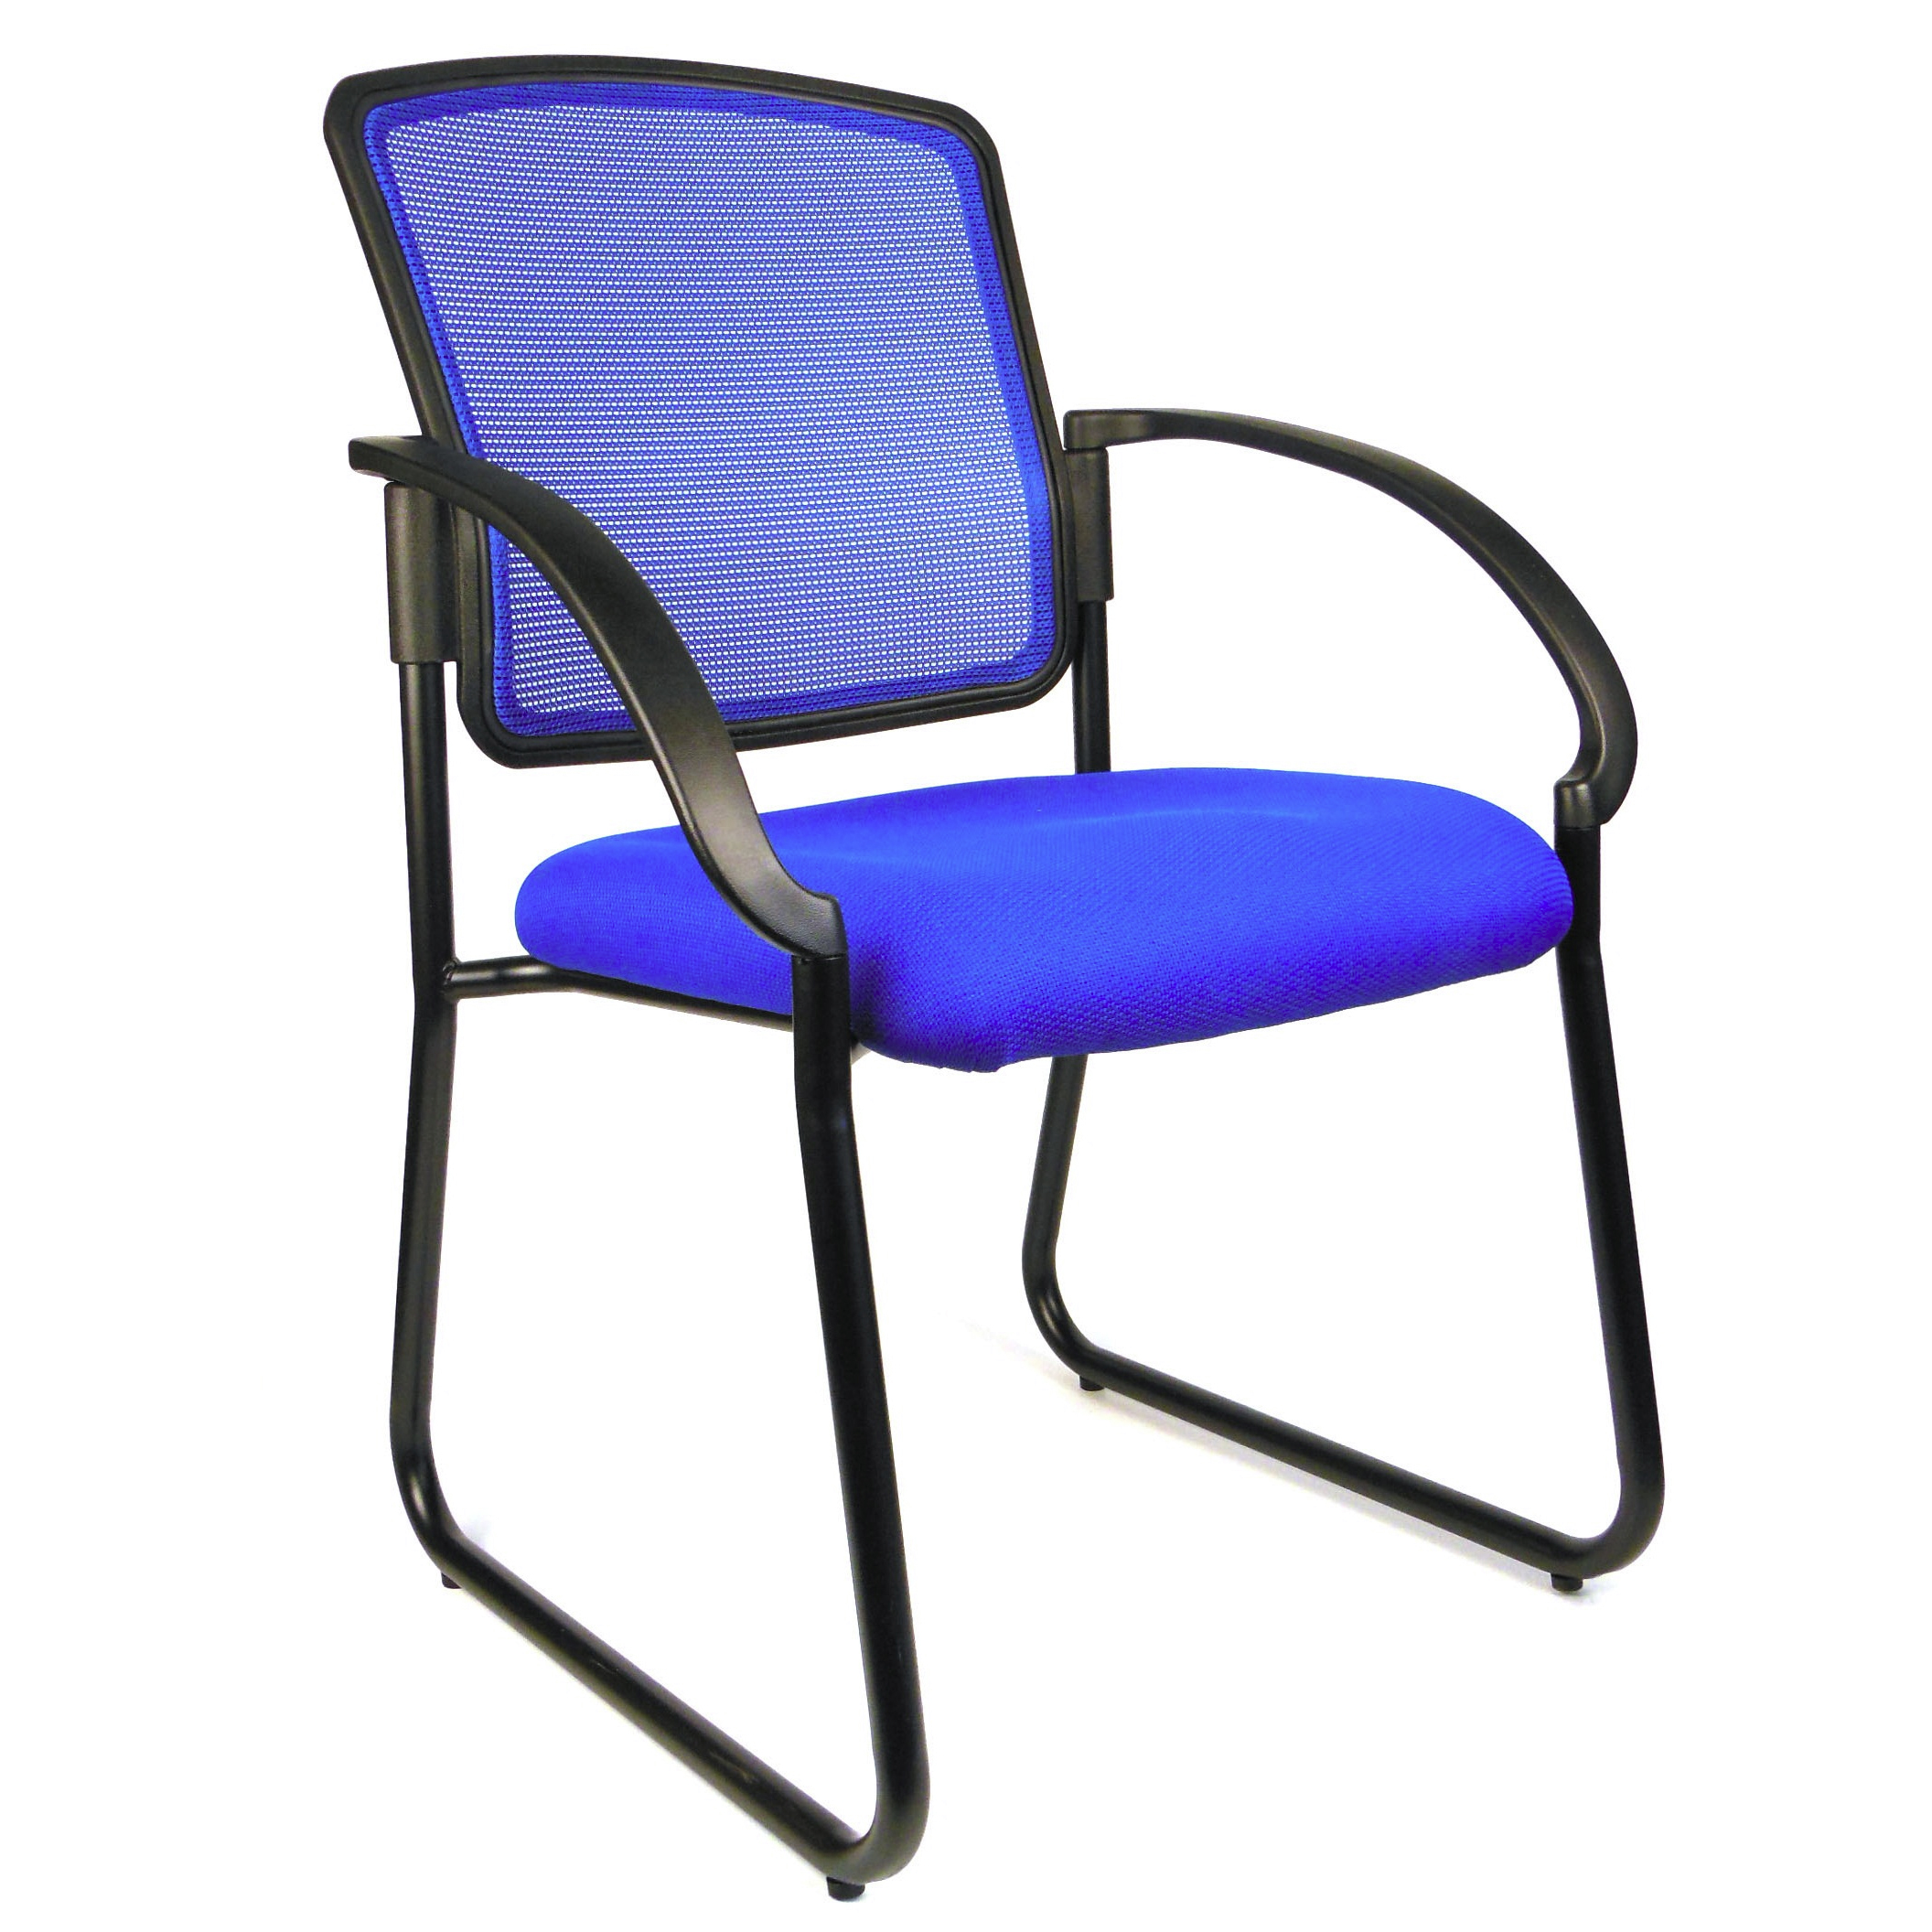 office chairs with adjustable arms with Jordan Visitor Chair on Matias Ergo Pro Ergonomic Keyboard Review as well Jordan Visitor Chair likewise Ergocentric Mycentric Ergonomic Office Chair besides 3862375 in addition Humanscale Diffrient World Mesh Chair.